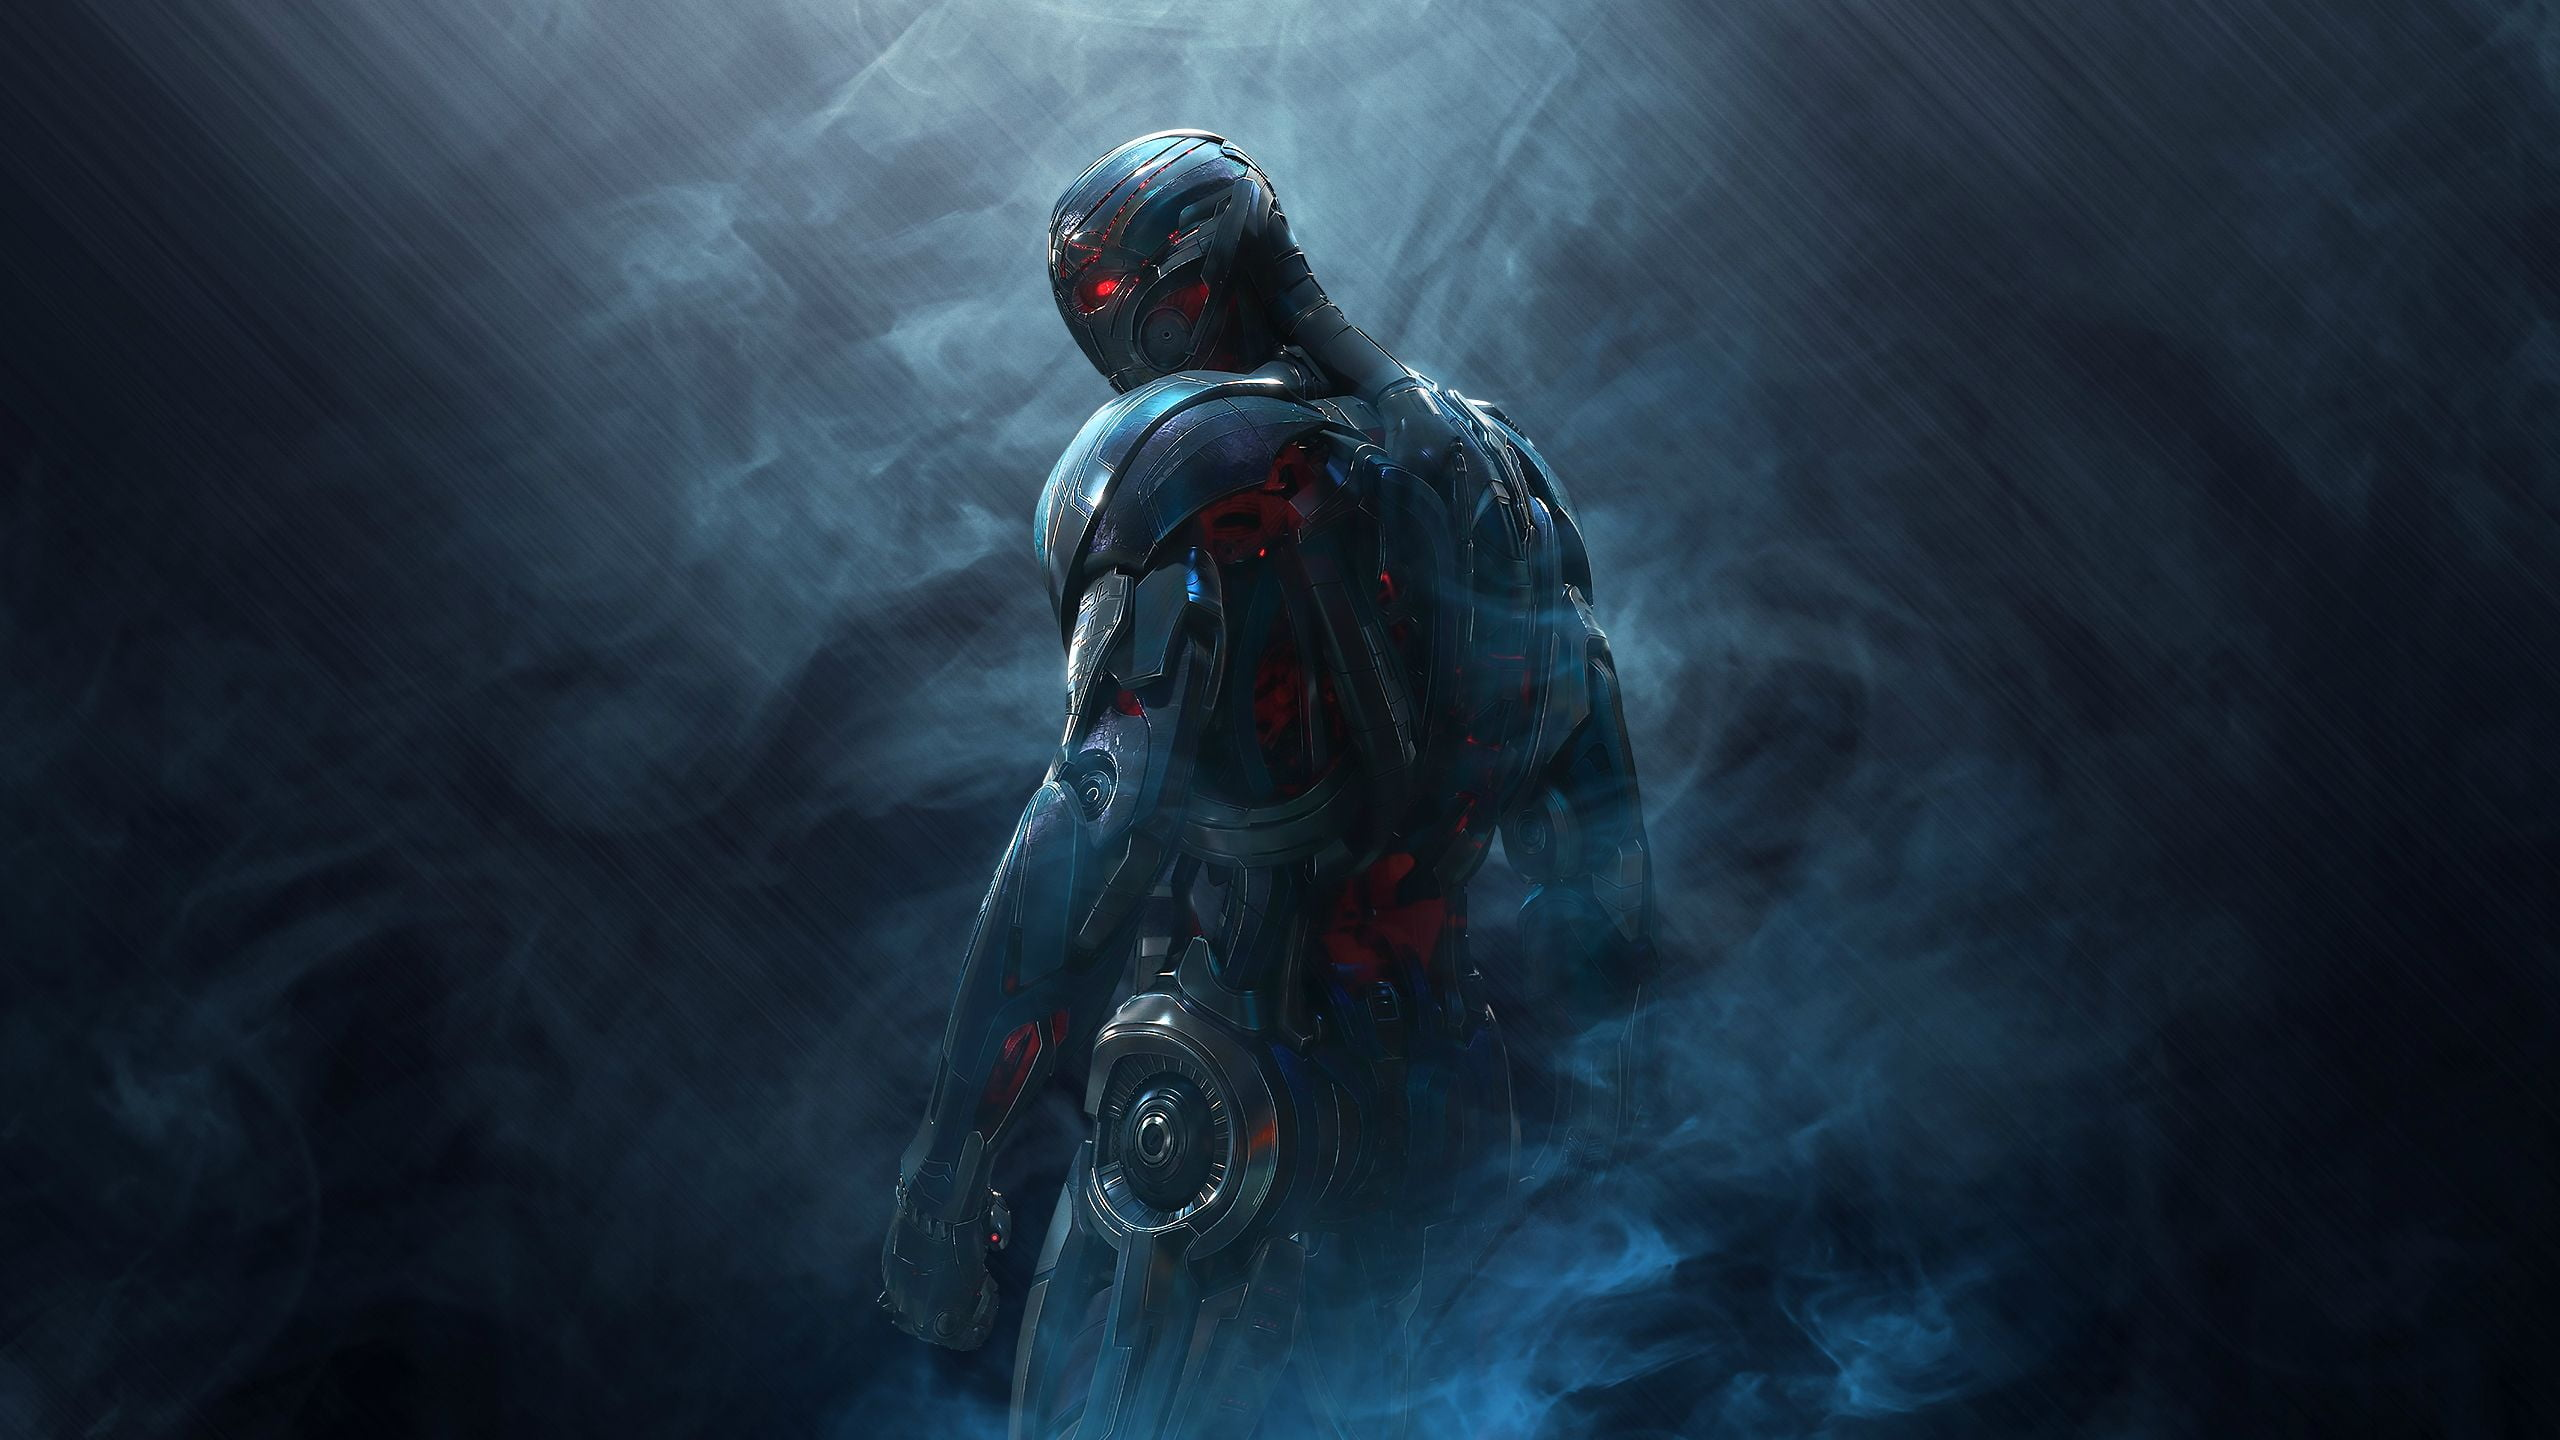 Photo of humanoid game character covered in smoke HD wallpaper 2560x1440